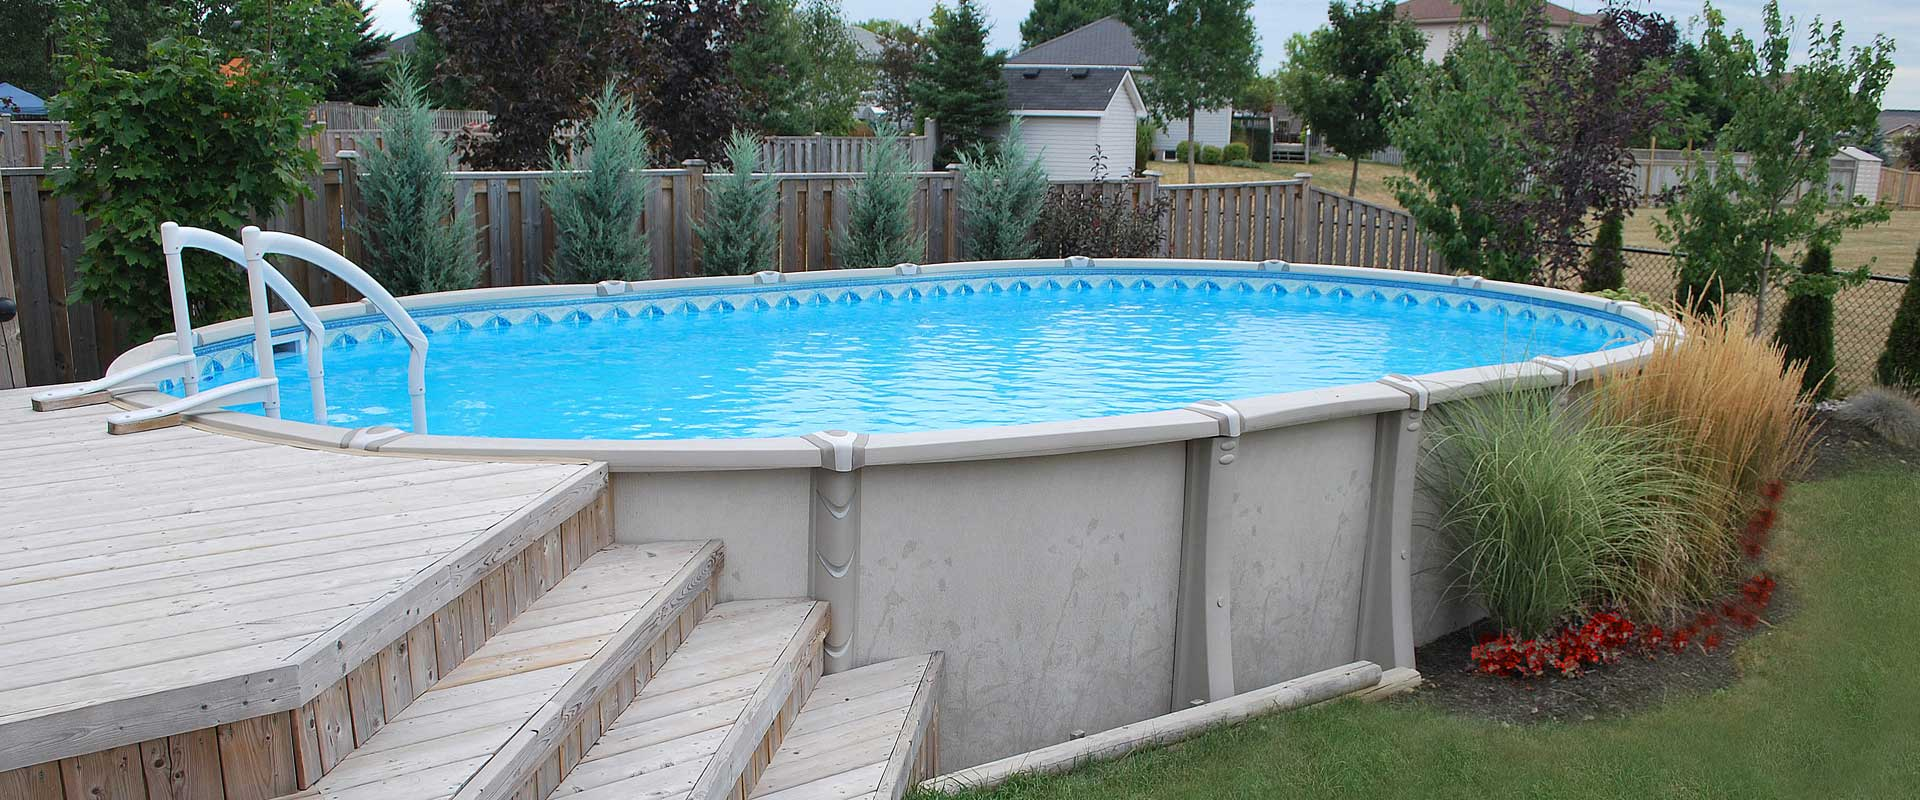 Above ground pools resin steel pioneer family pools - How to put hot water in a swimming pool ...